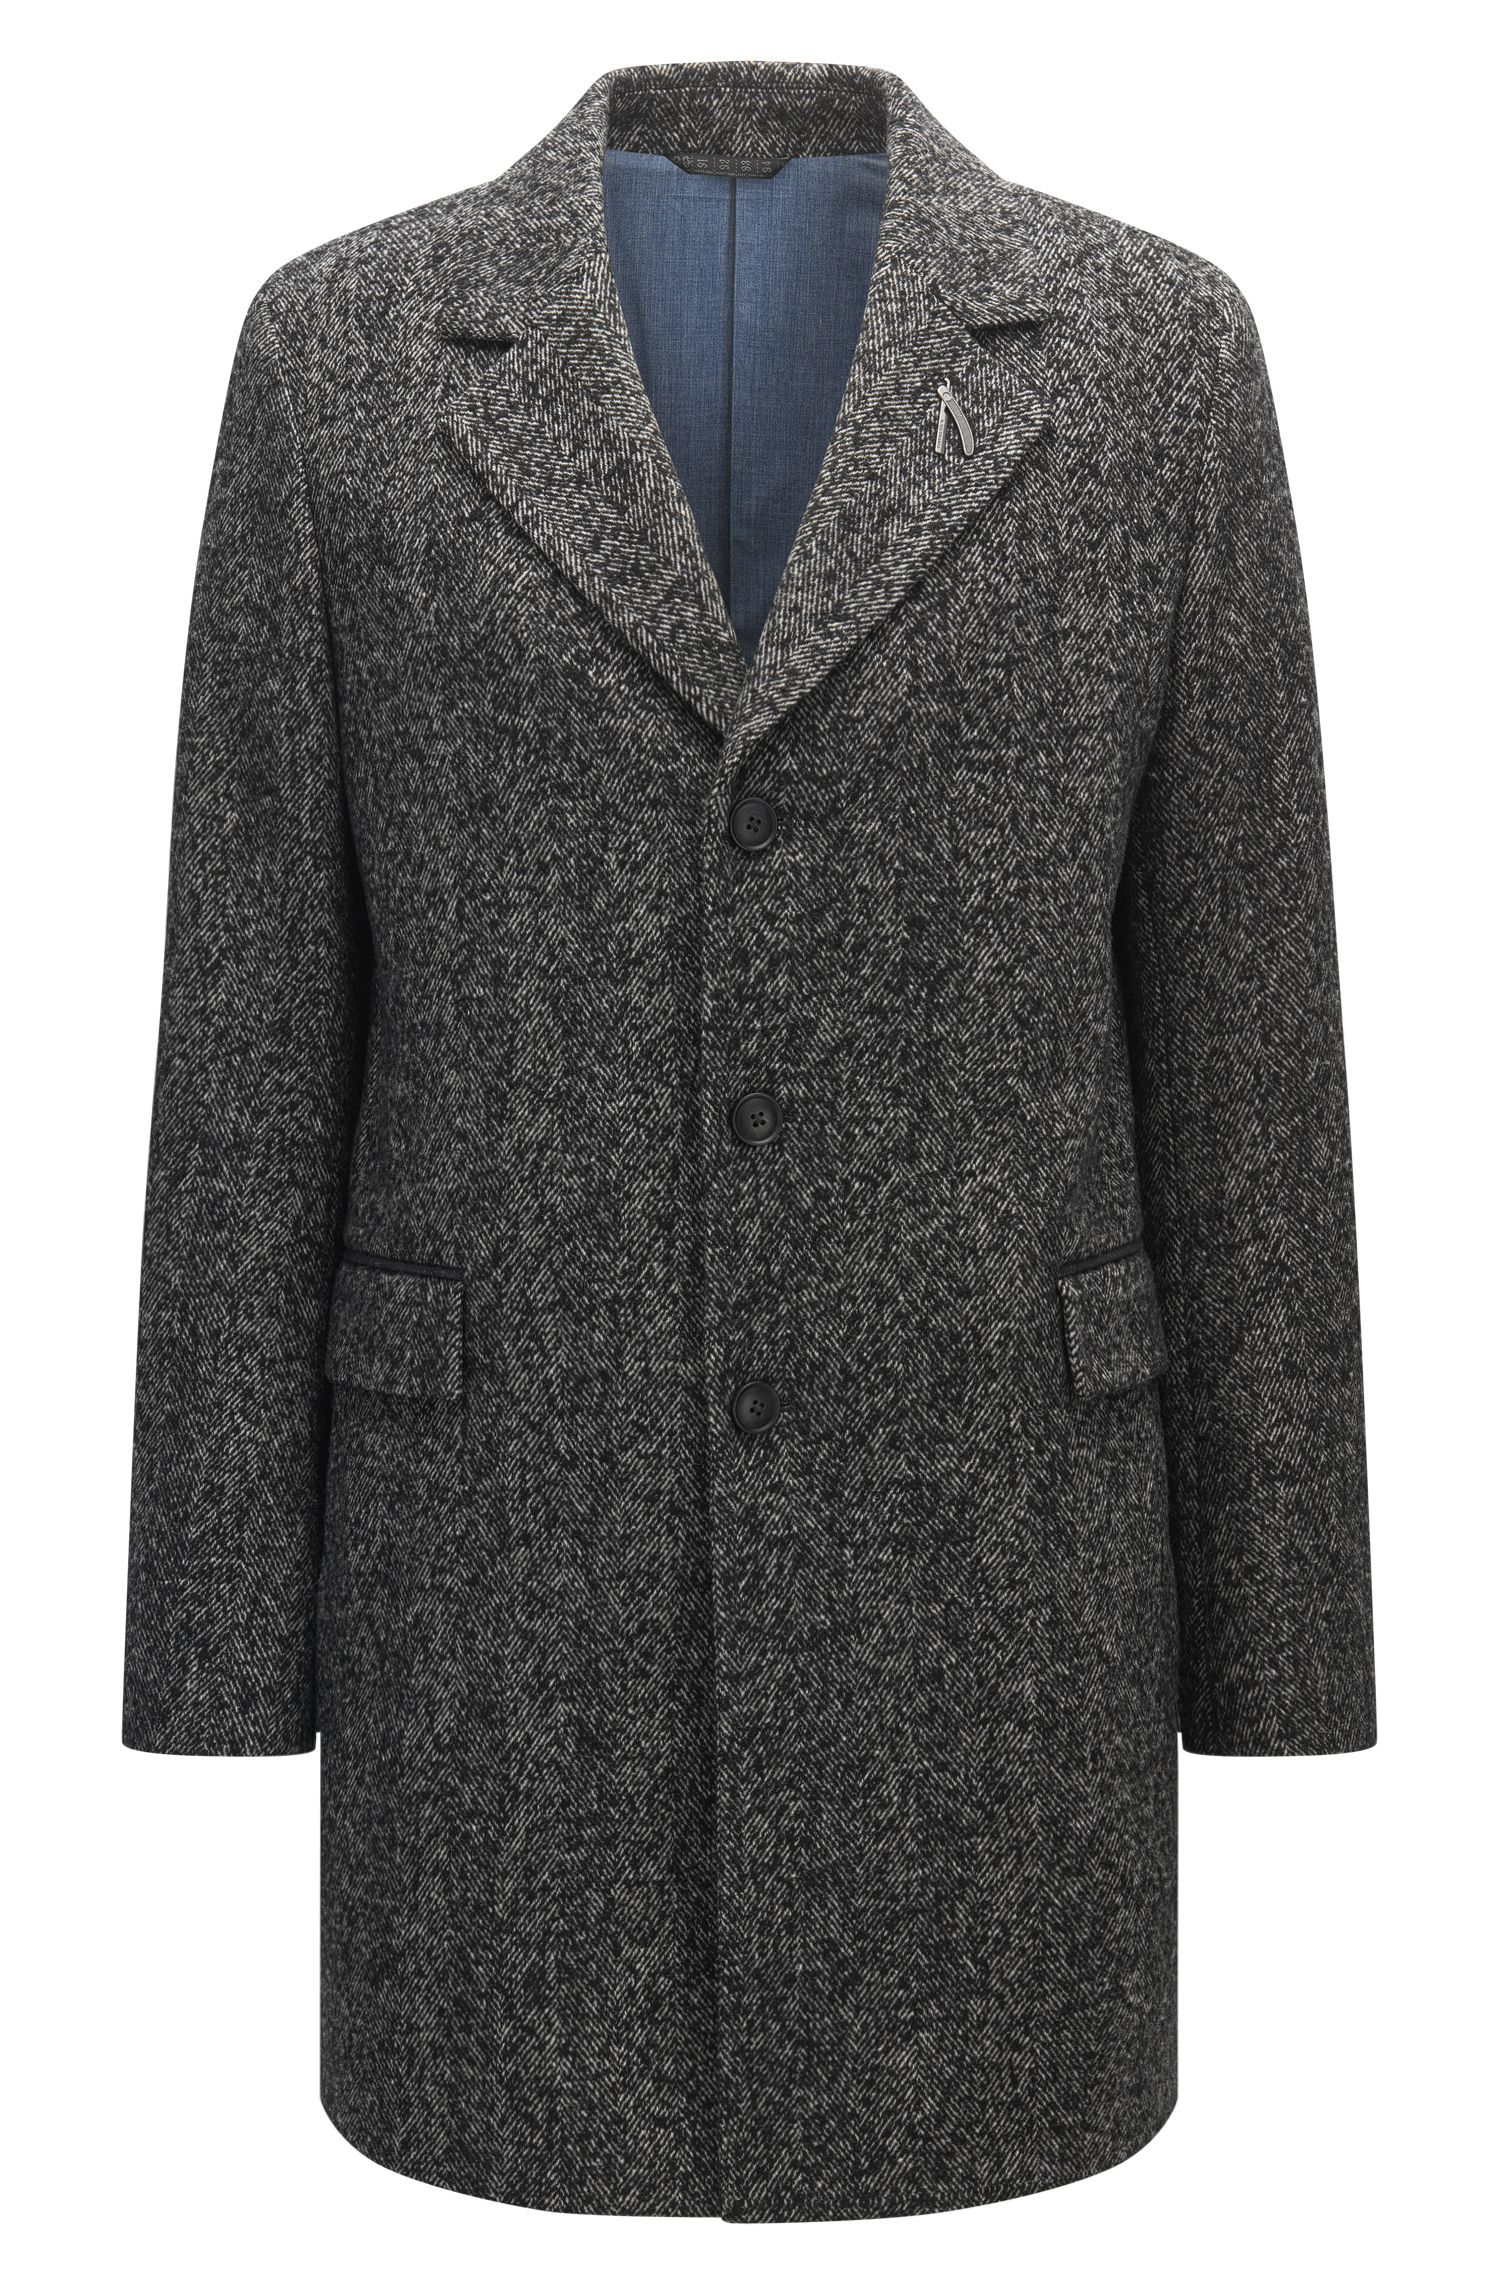 Herringbone Italian Wool Blend Coat | Bead